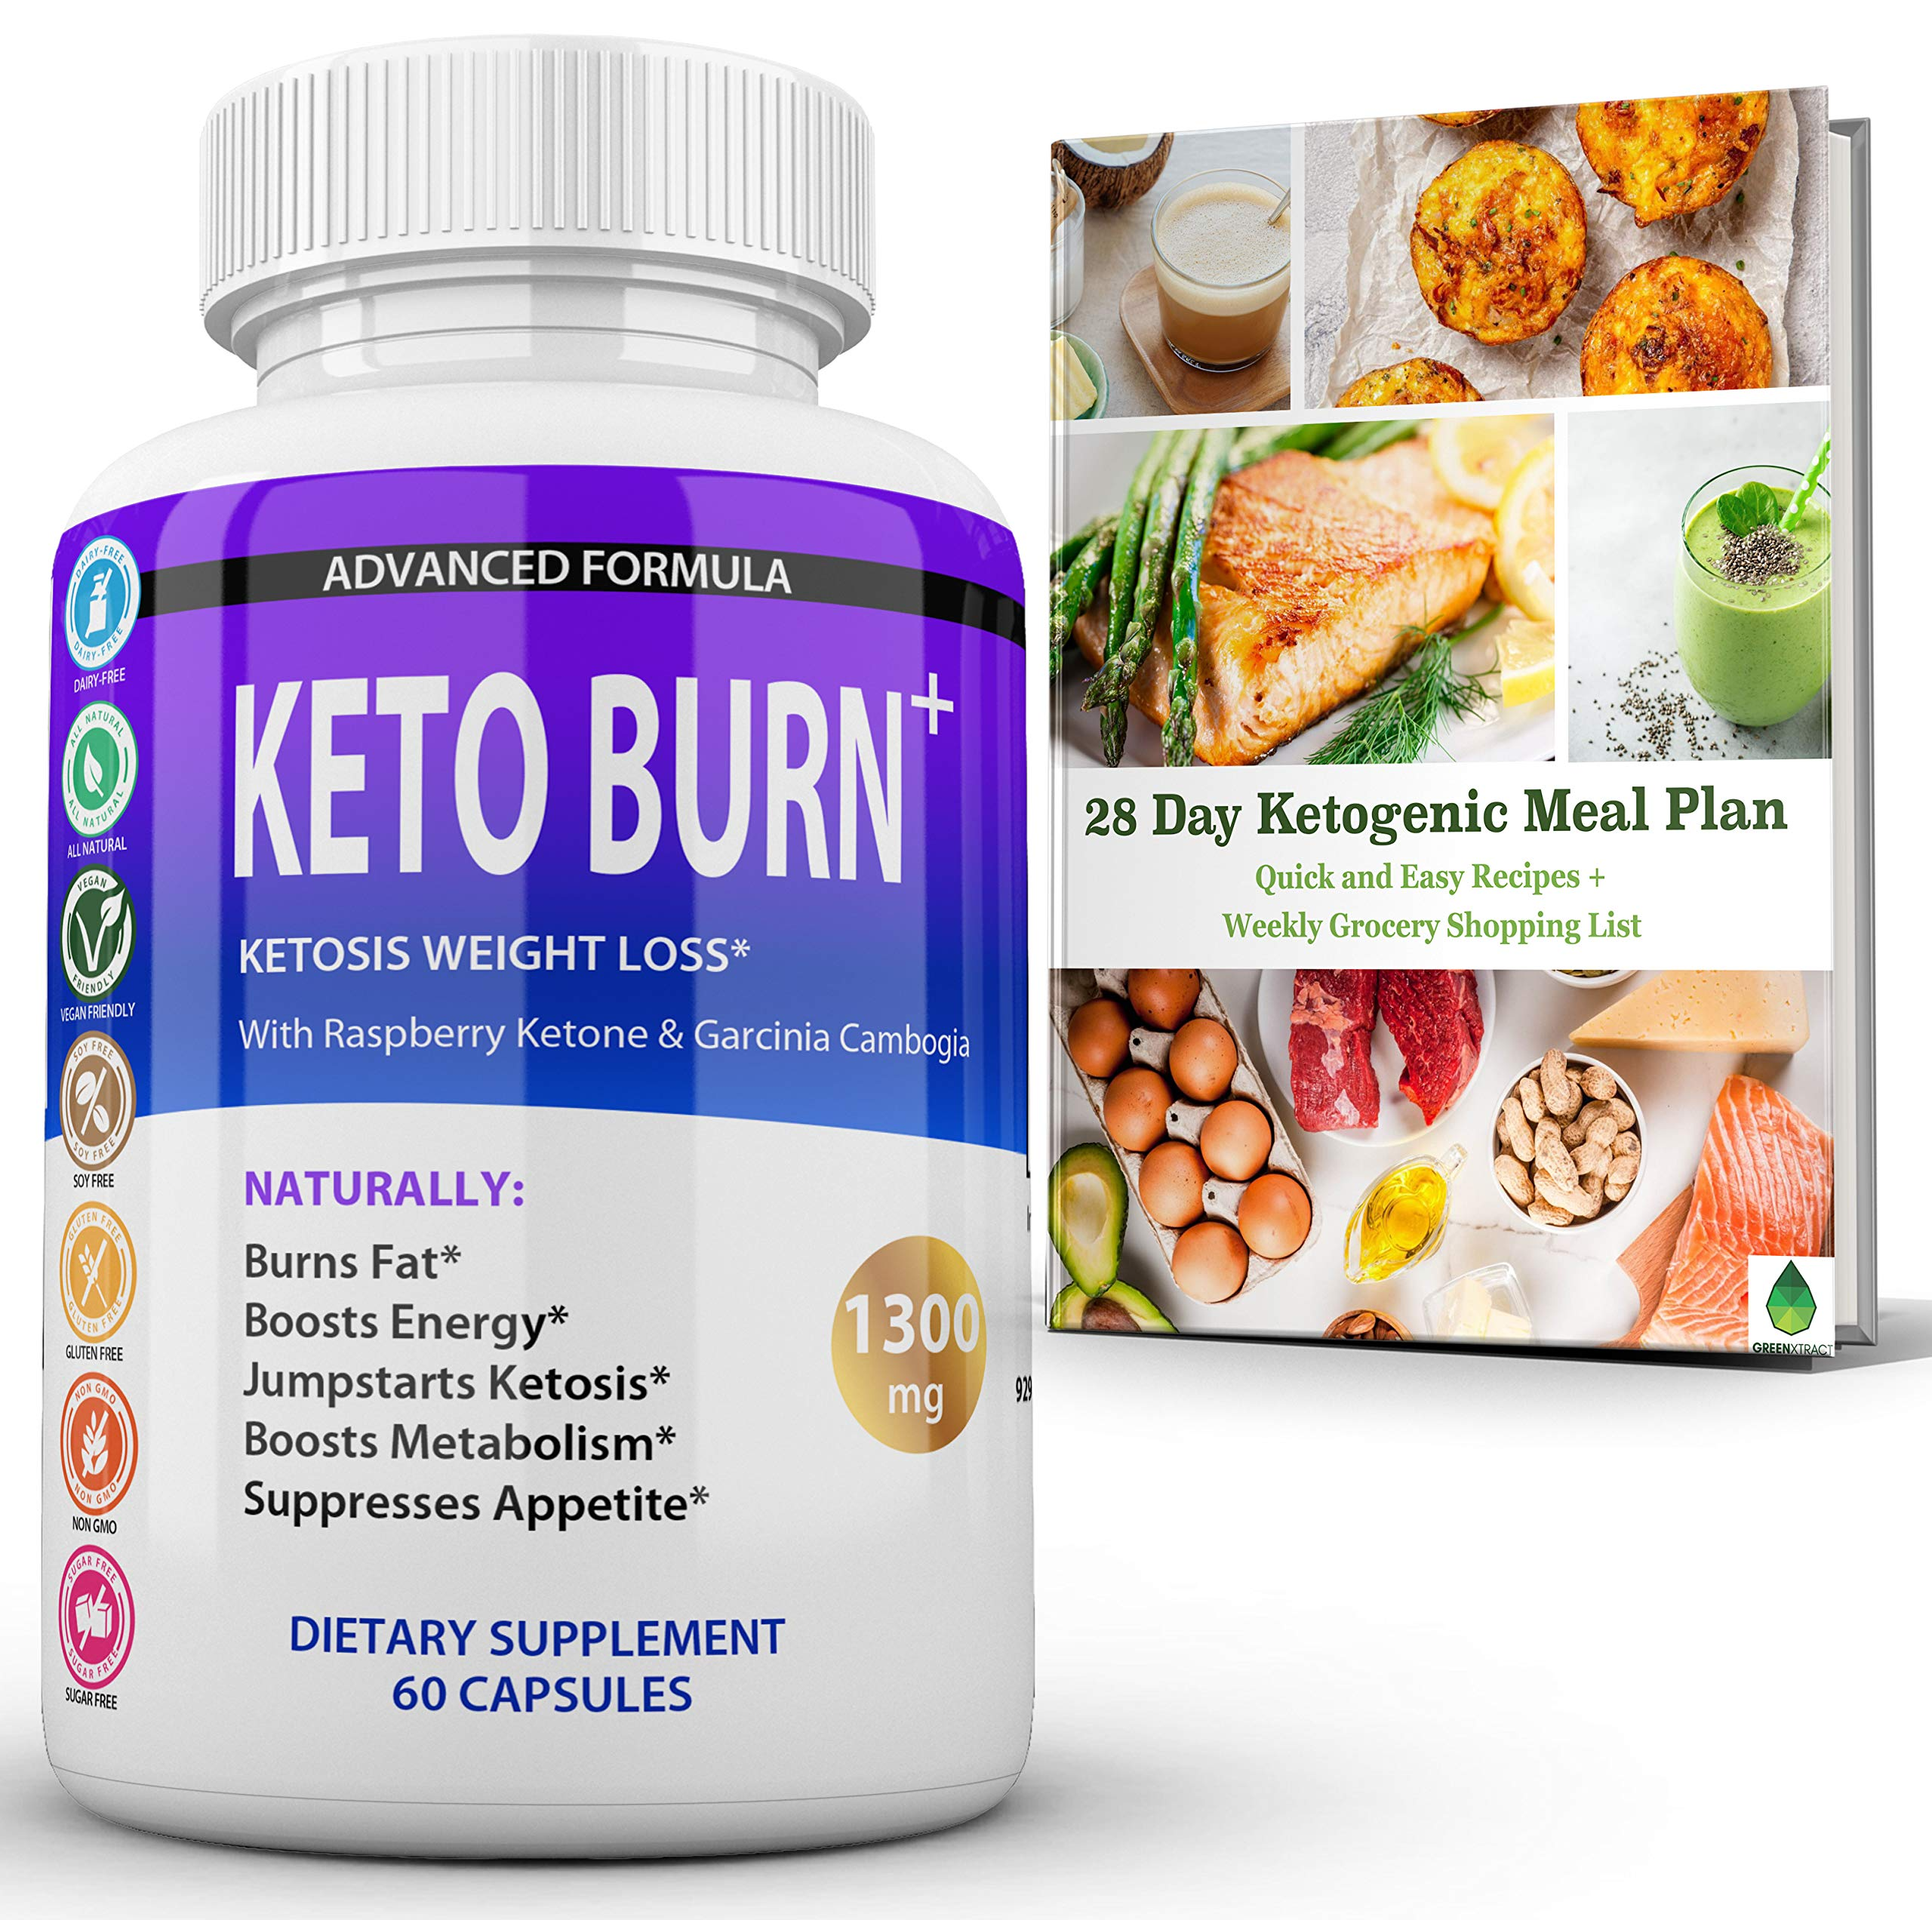 Keto Burn Ketosis Weight Loss 1300 MG, All Natural Ketogenic Appetite Suppressant Fat Burner, Boost Energy Focus Metabolism, with Raspberry Ketone Garcinia Cambogia Green Tea and More, Bonus Ebook by GreenXtract